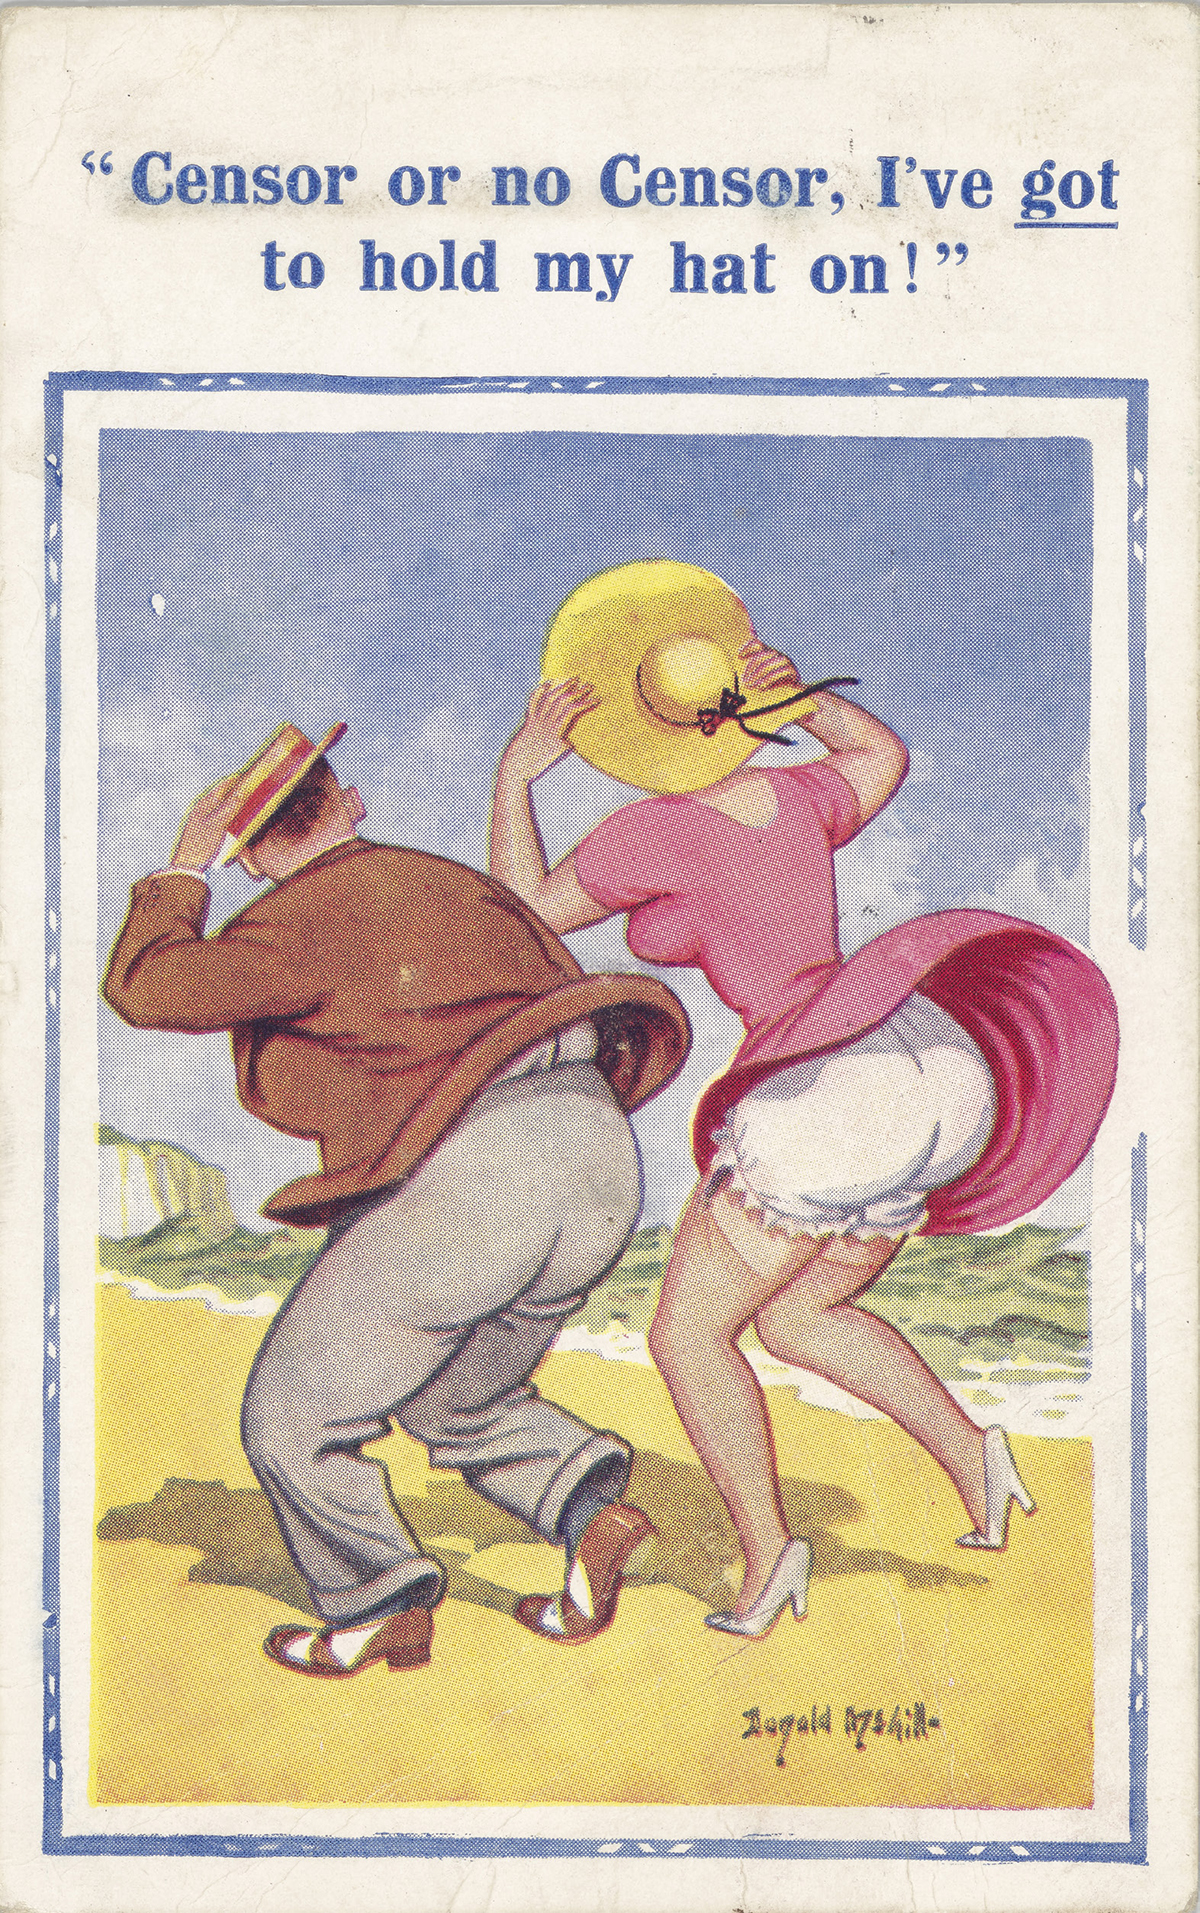 Postcard with an image of a gentleman next to a lady in a pink dress which has been blown up revealing her undergarments.